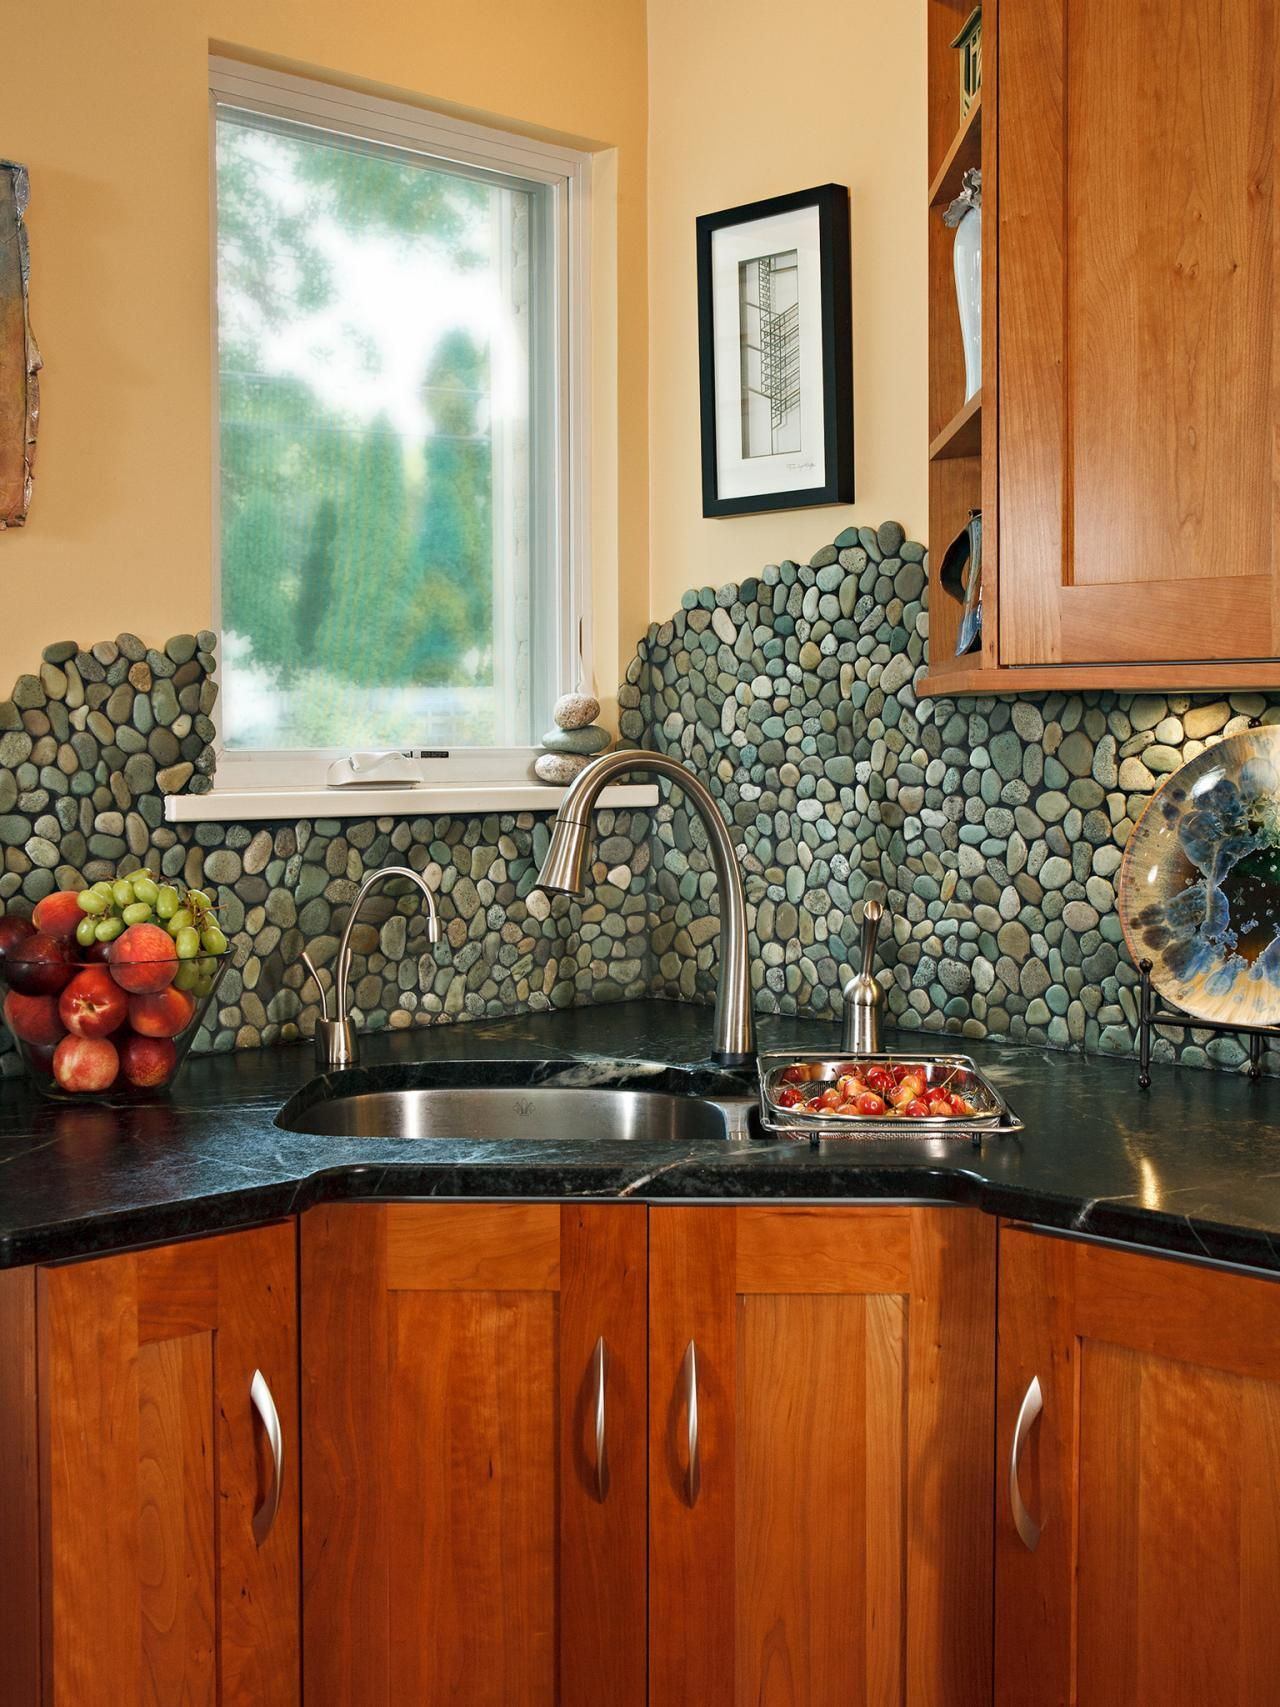 We Always Give The Ideal Of Kitchen Design And Tips With